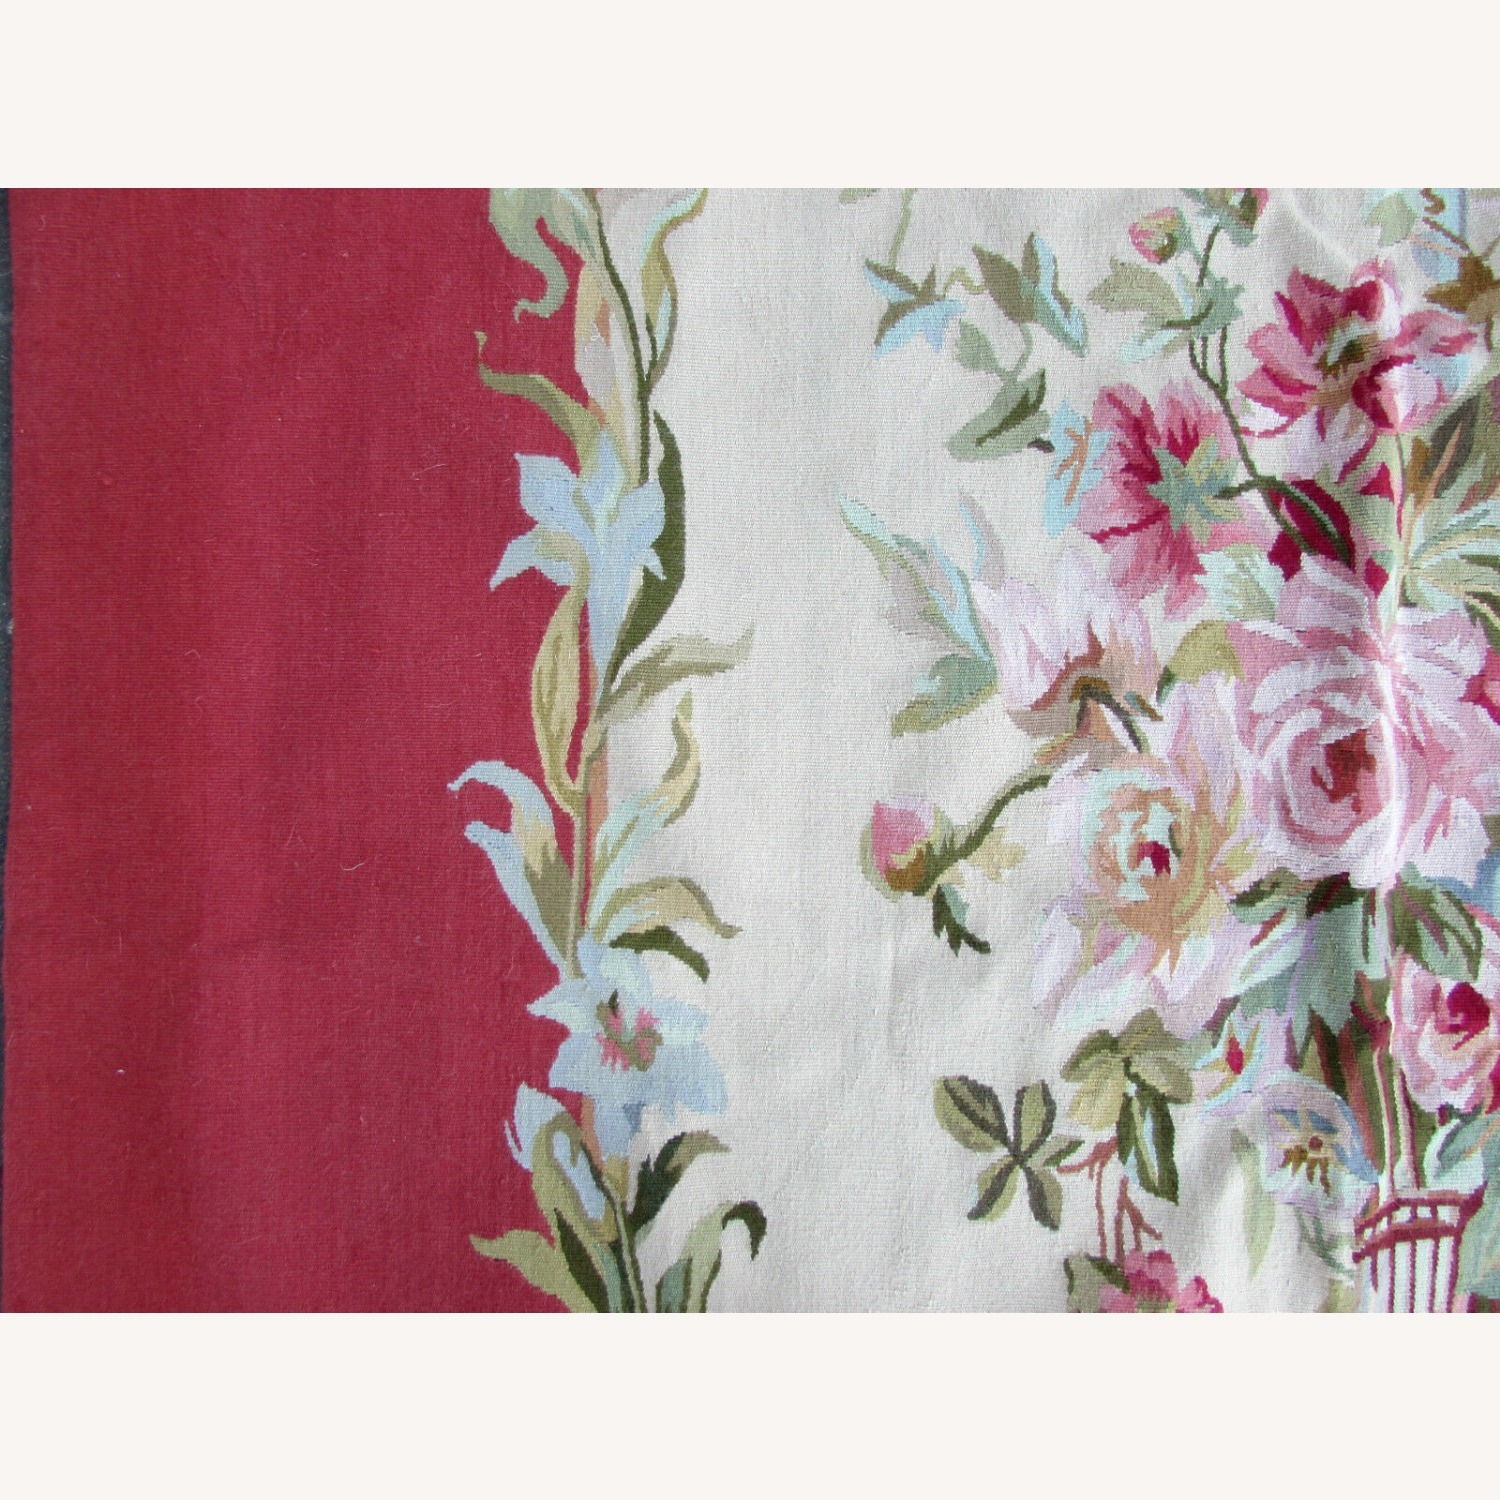 Handmade Vintage French Aubusson Rug - image-9